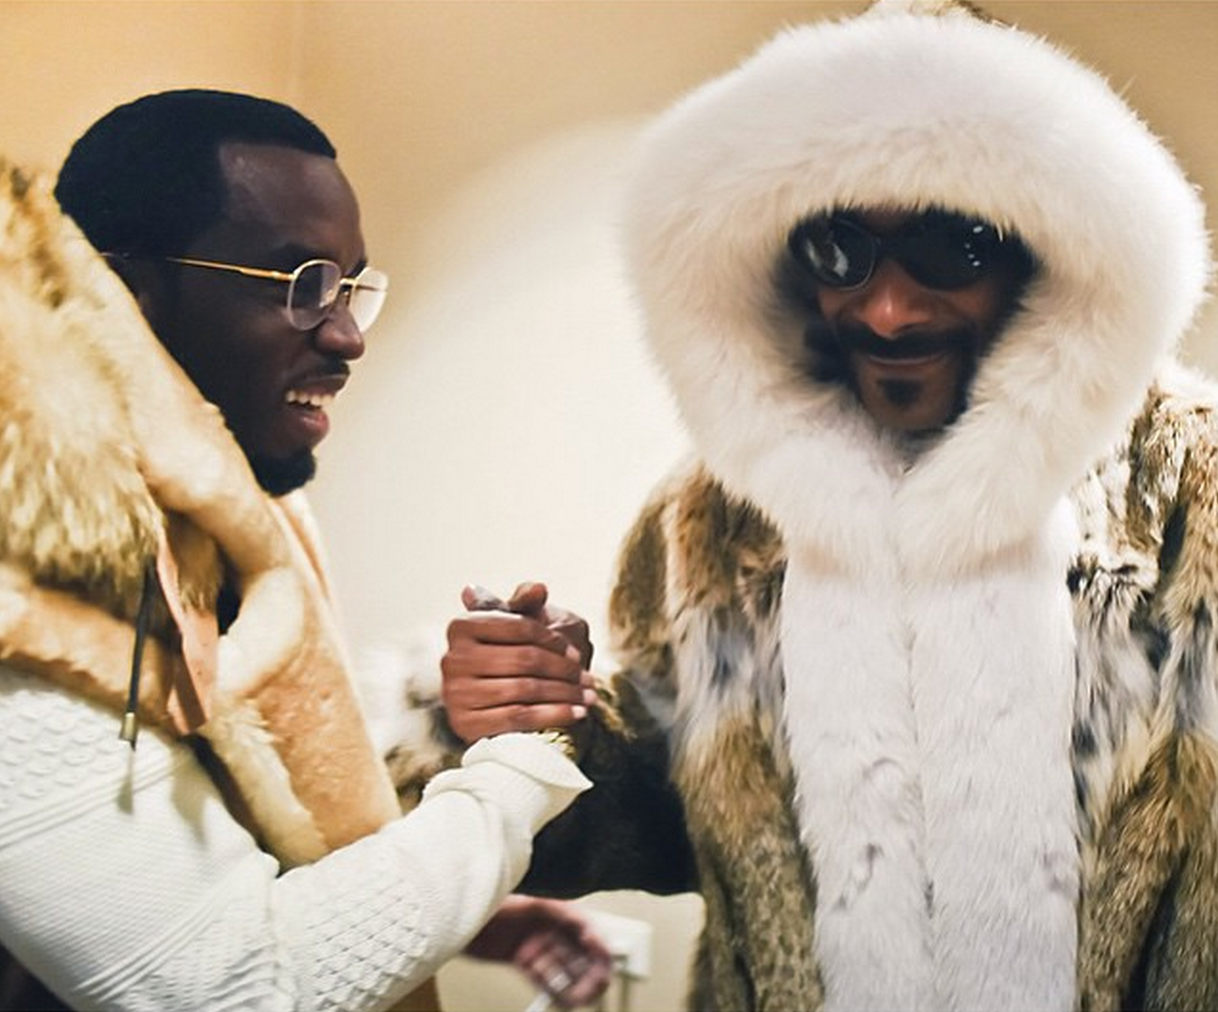 Sean Combs and Snoop